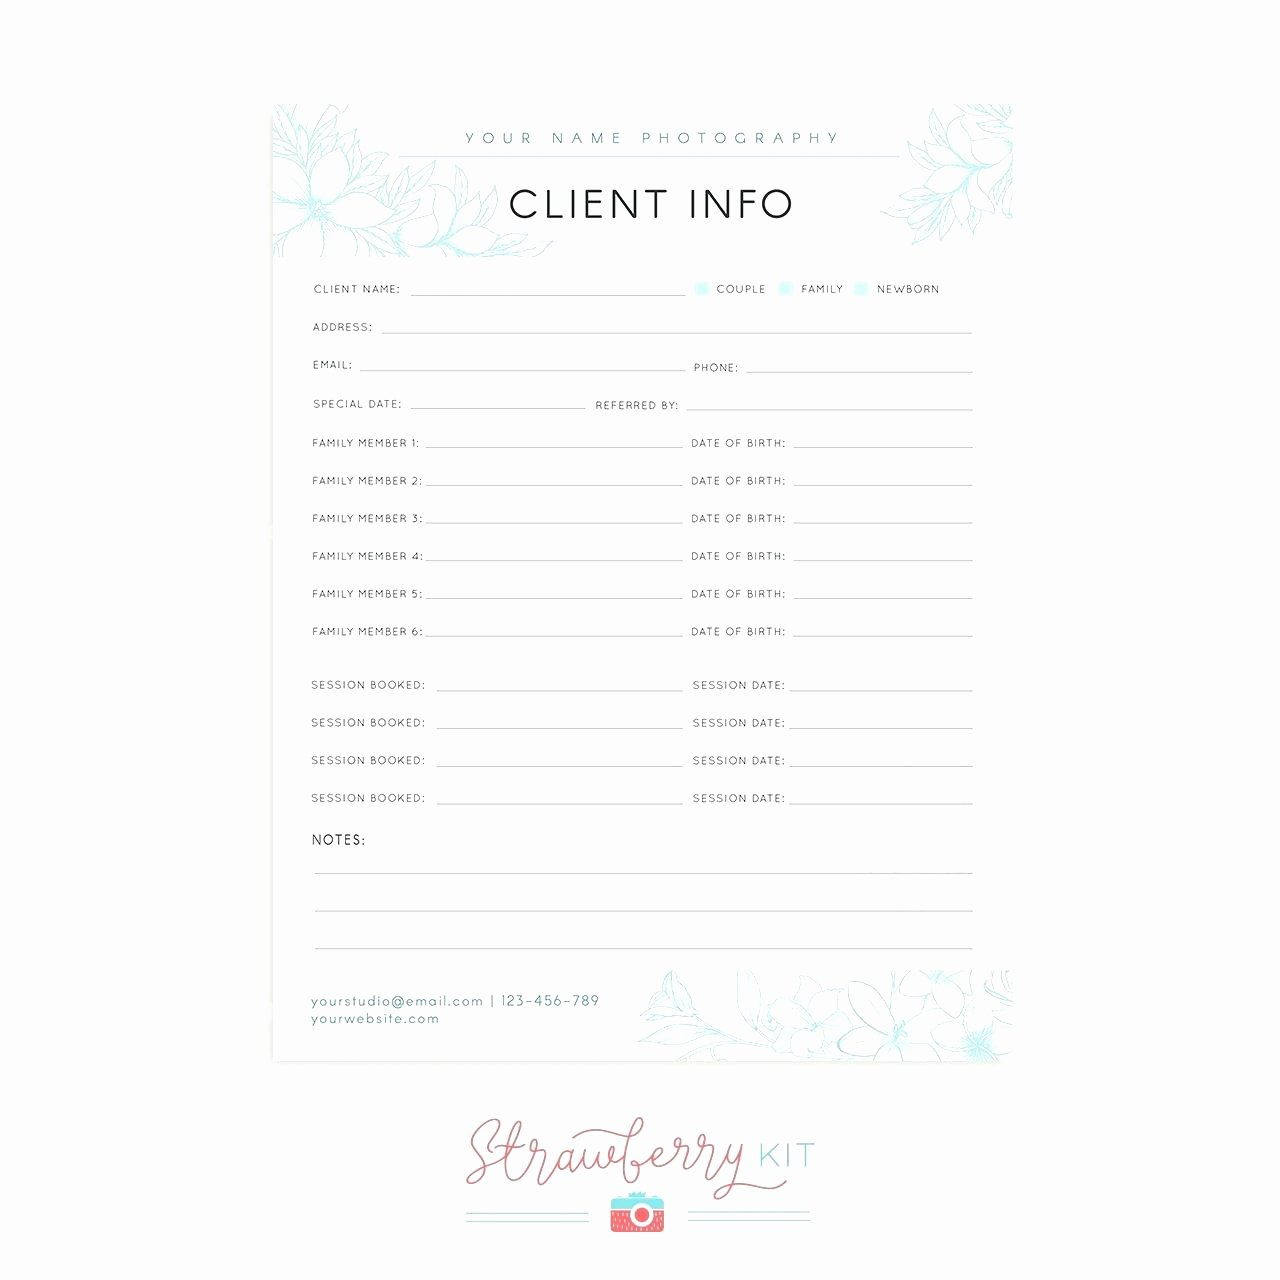 Client Referral form Template Inspirational Customer Referral form Template – Radiofama